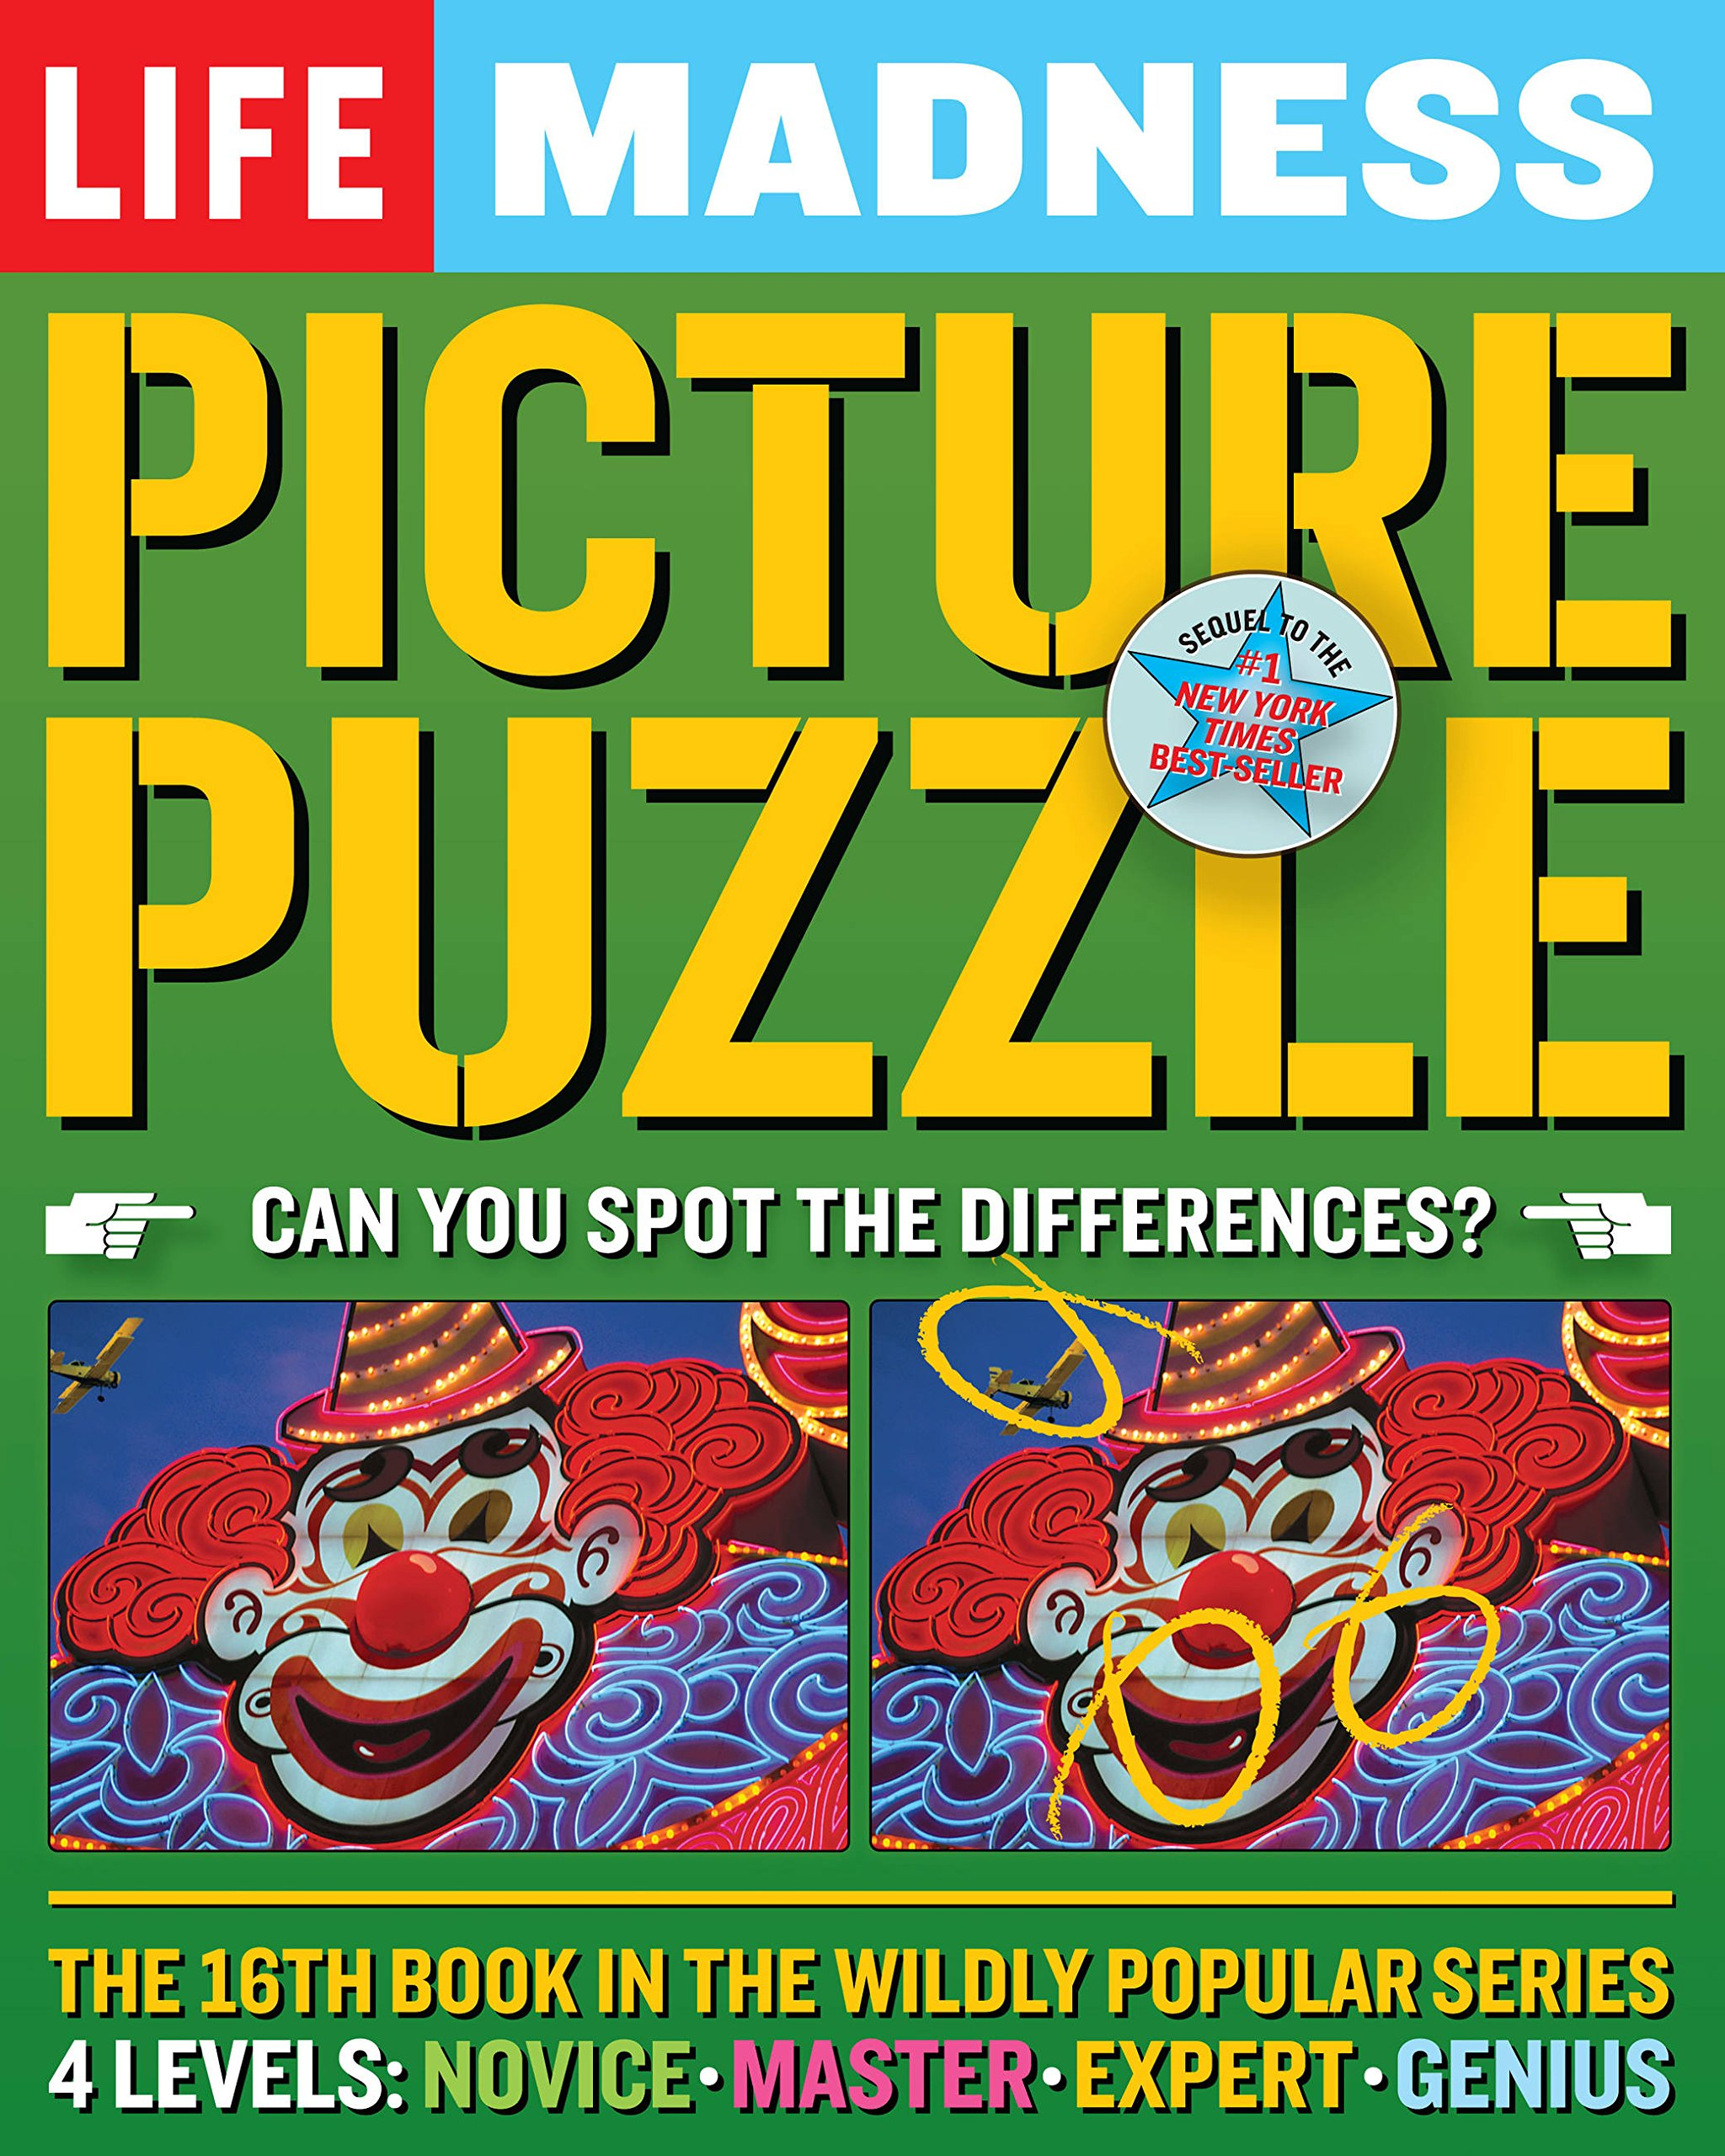 LIFE Picture Puzzle Madness (Life Madness Picture Puzzle) PDF